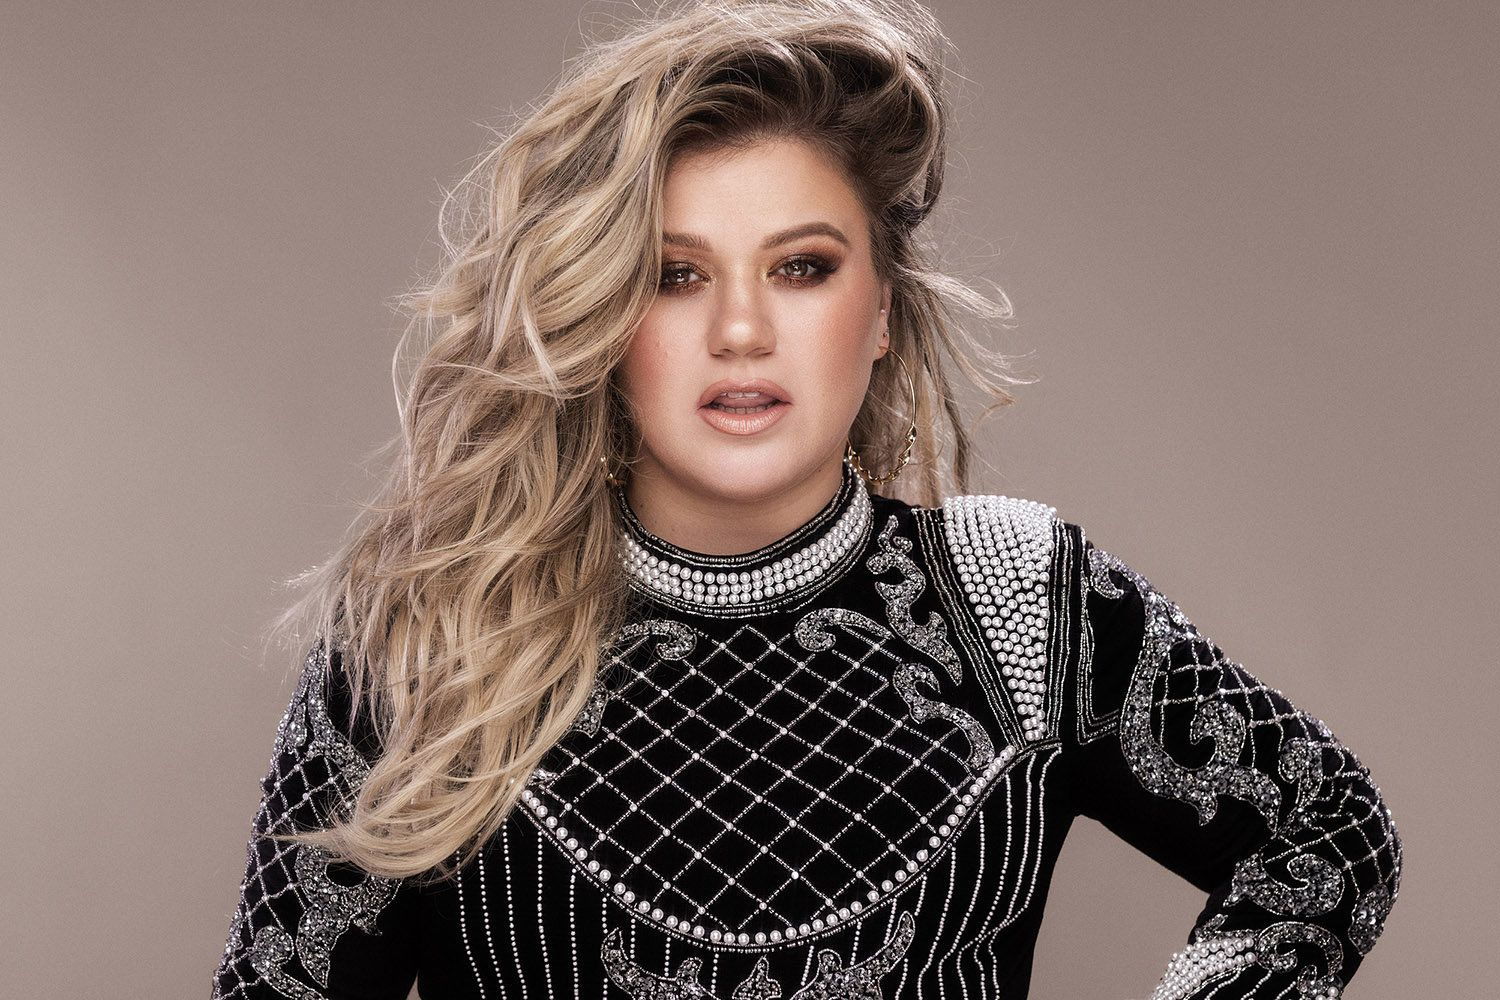 Kelly Clarkson Opens Up About Her Decision to Spank Her Two Kids pics